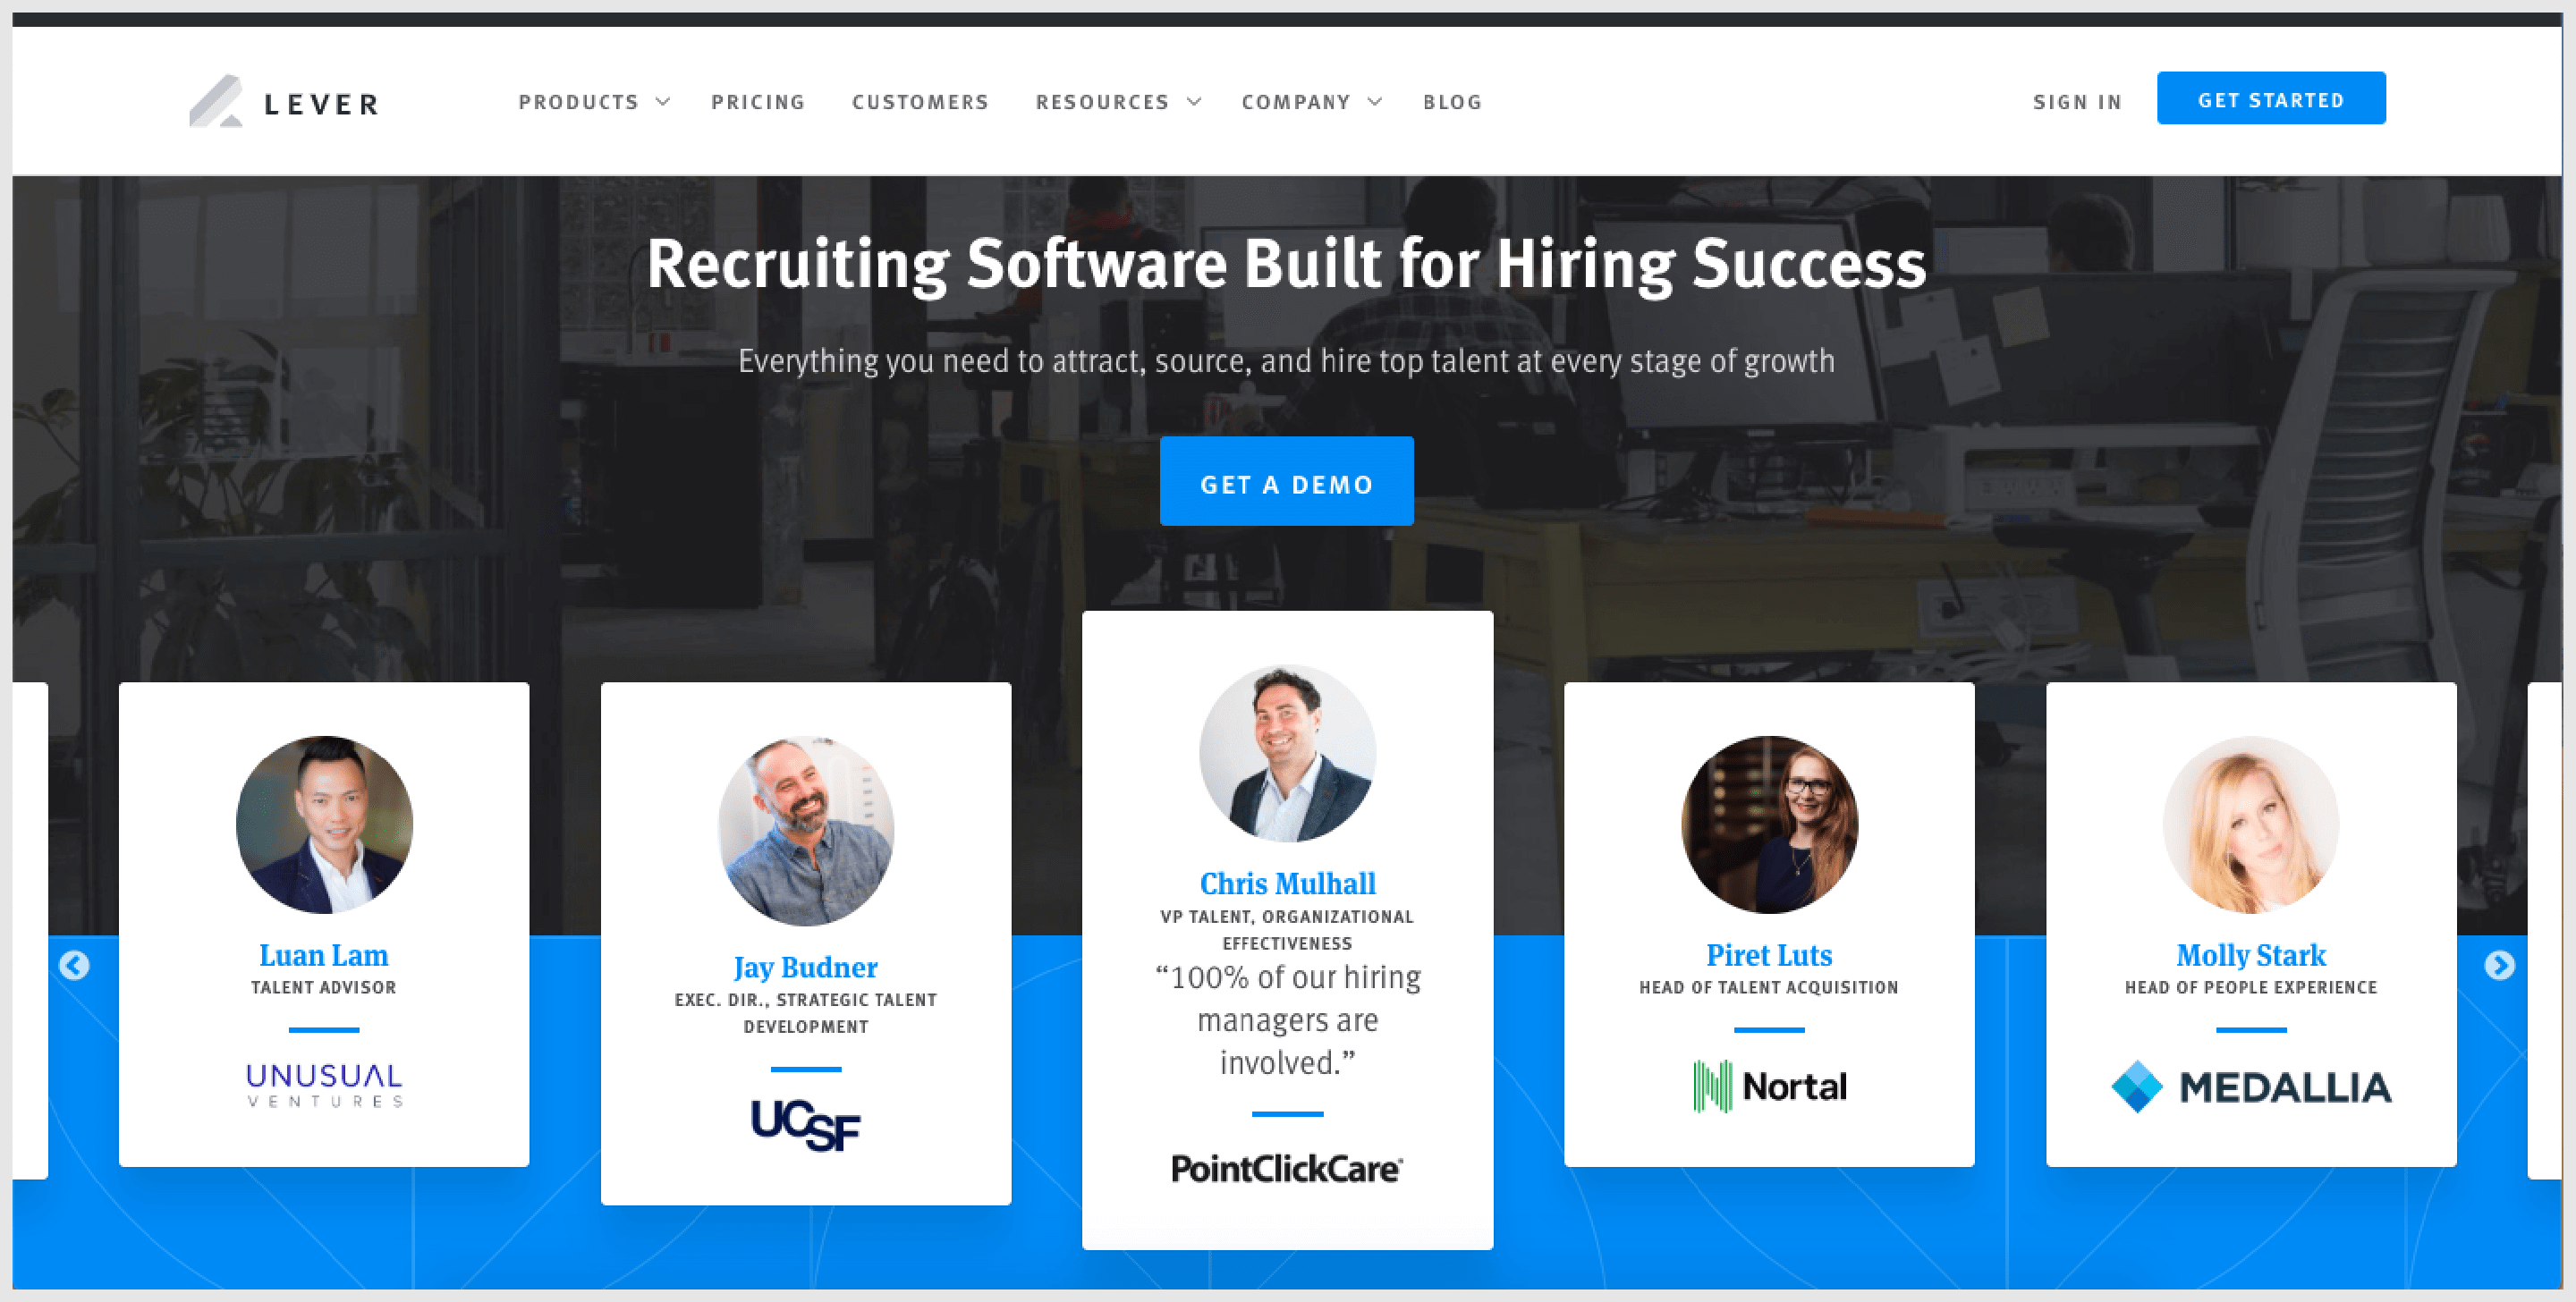 Lever combines powerful applicant tracking system and CRM functionality to deliver efficient services in regards to finding and hiring new talents.